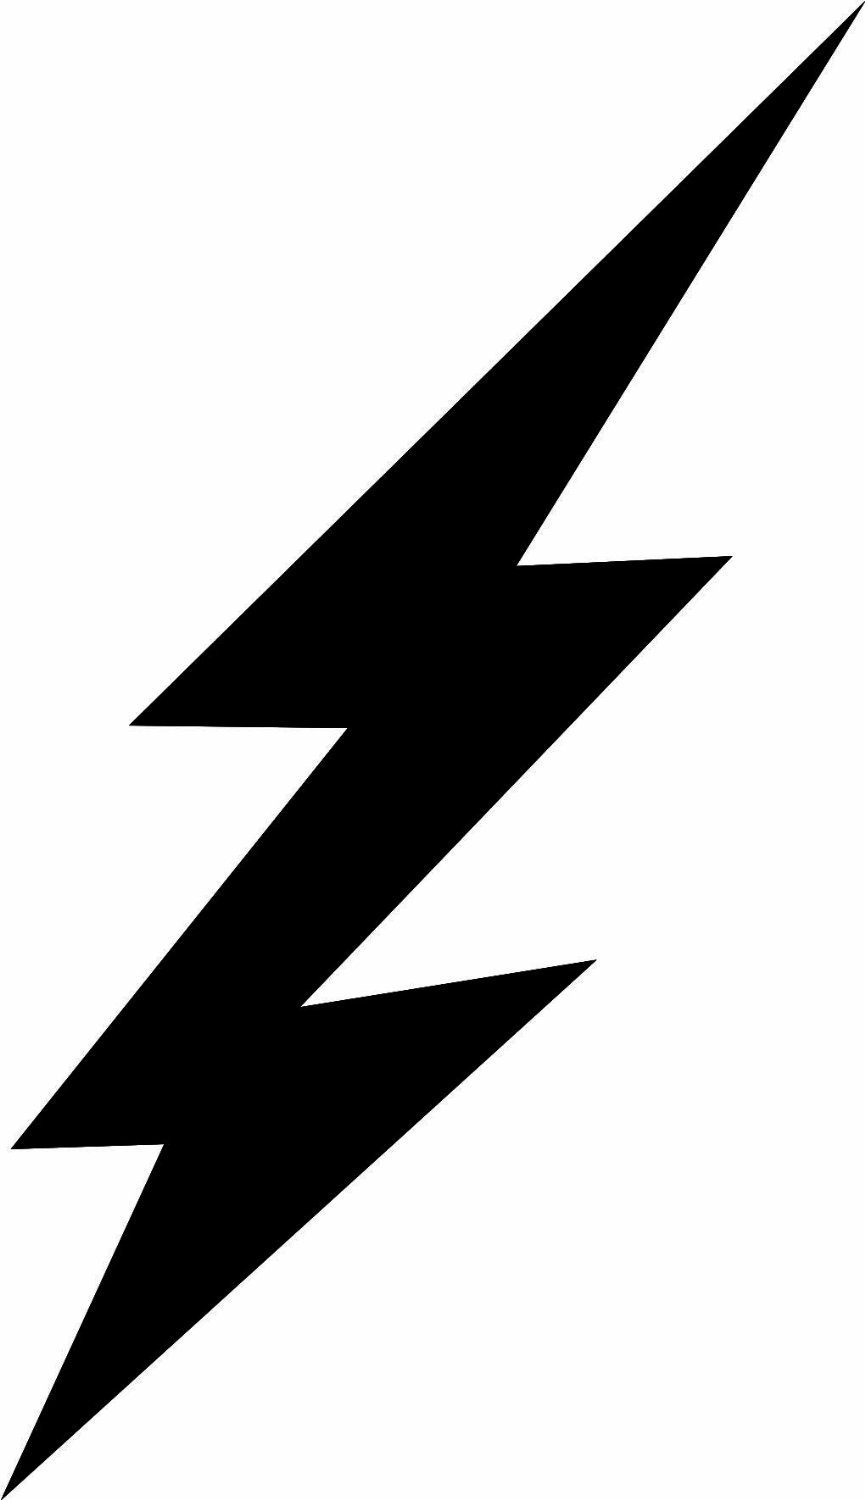 Free clipart of lightning bolts vector black and white stock Free Lightning Bolt, Download Free Clip Art, Free Clip Art on ... vector black and white stock